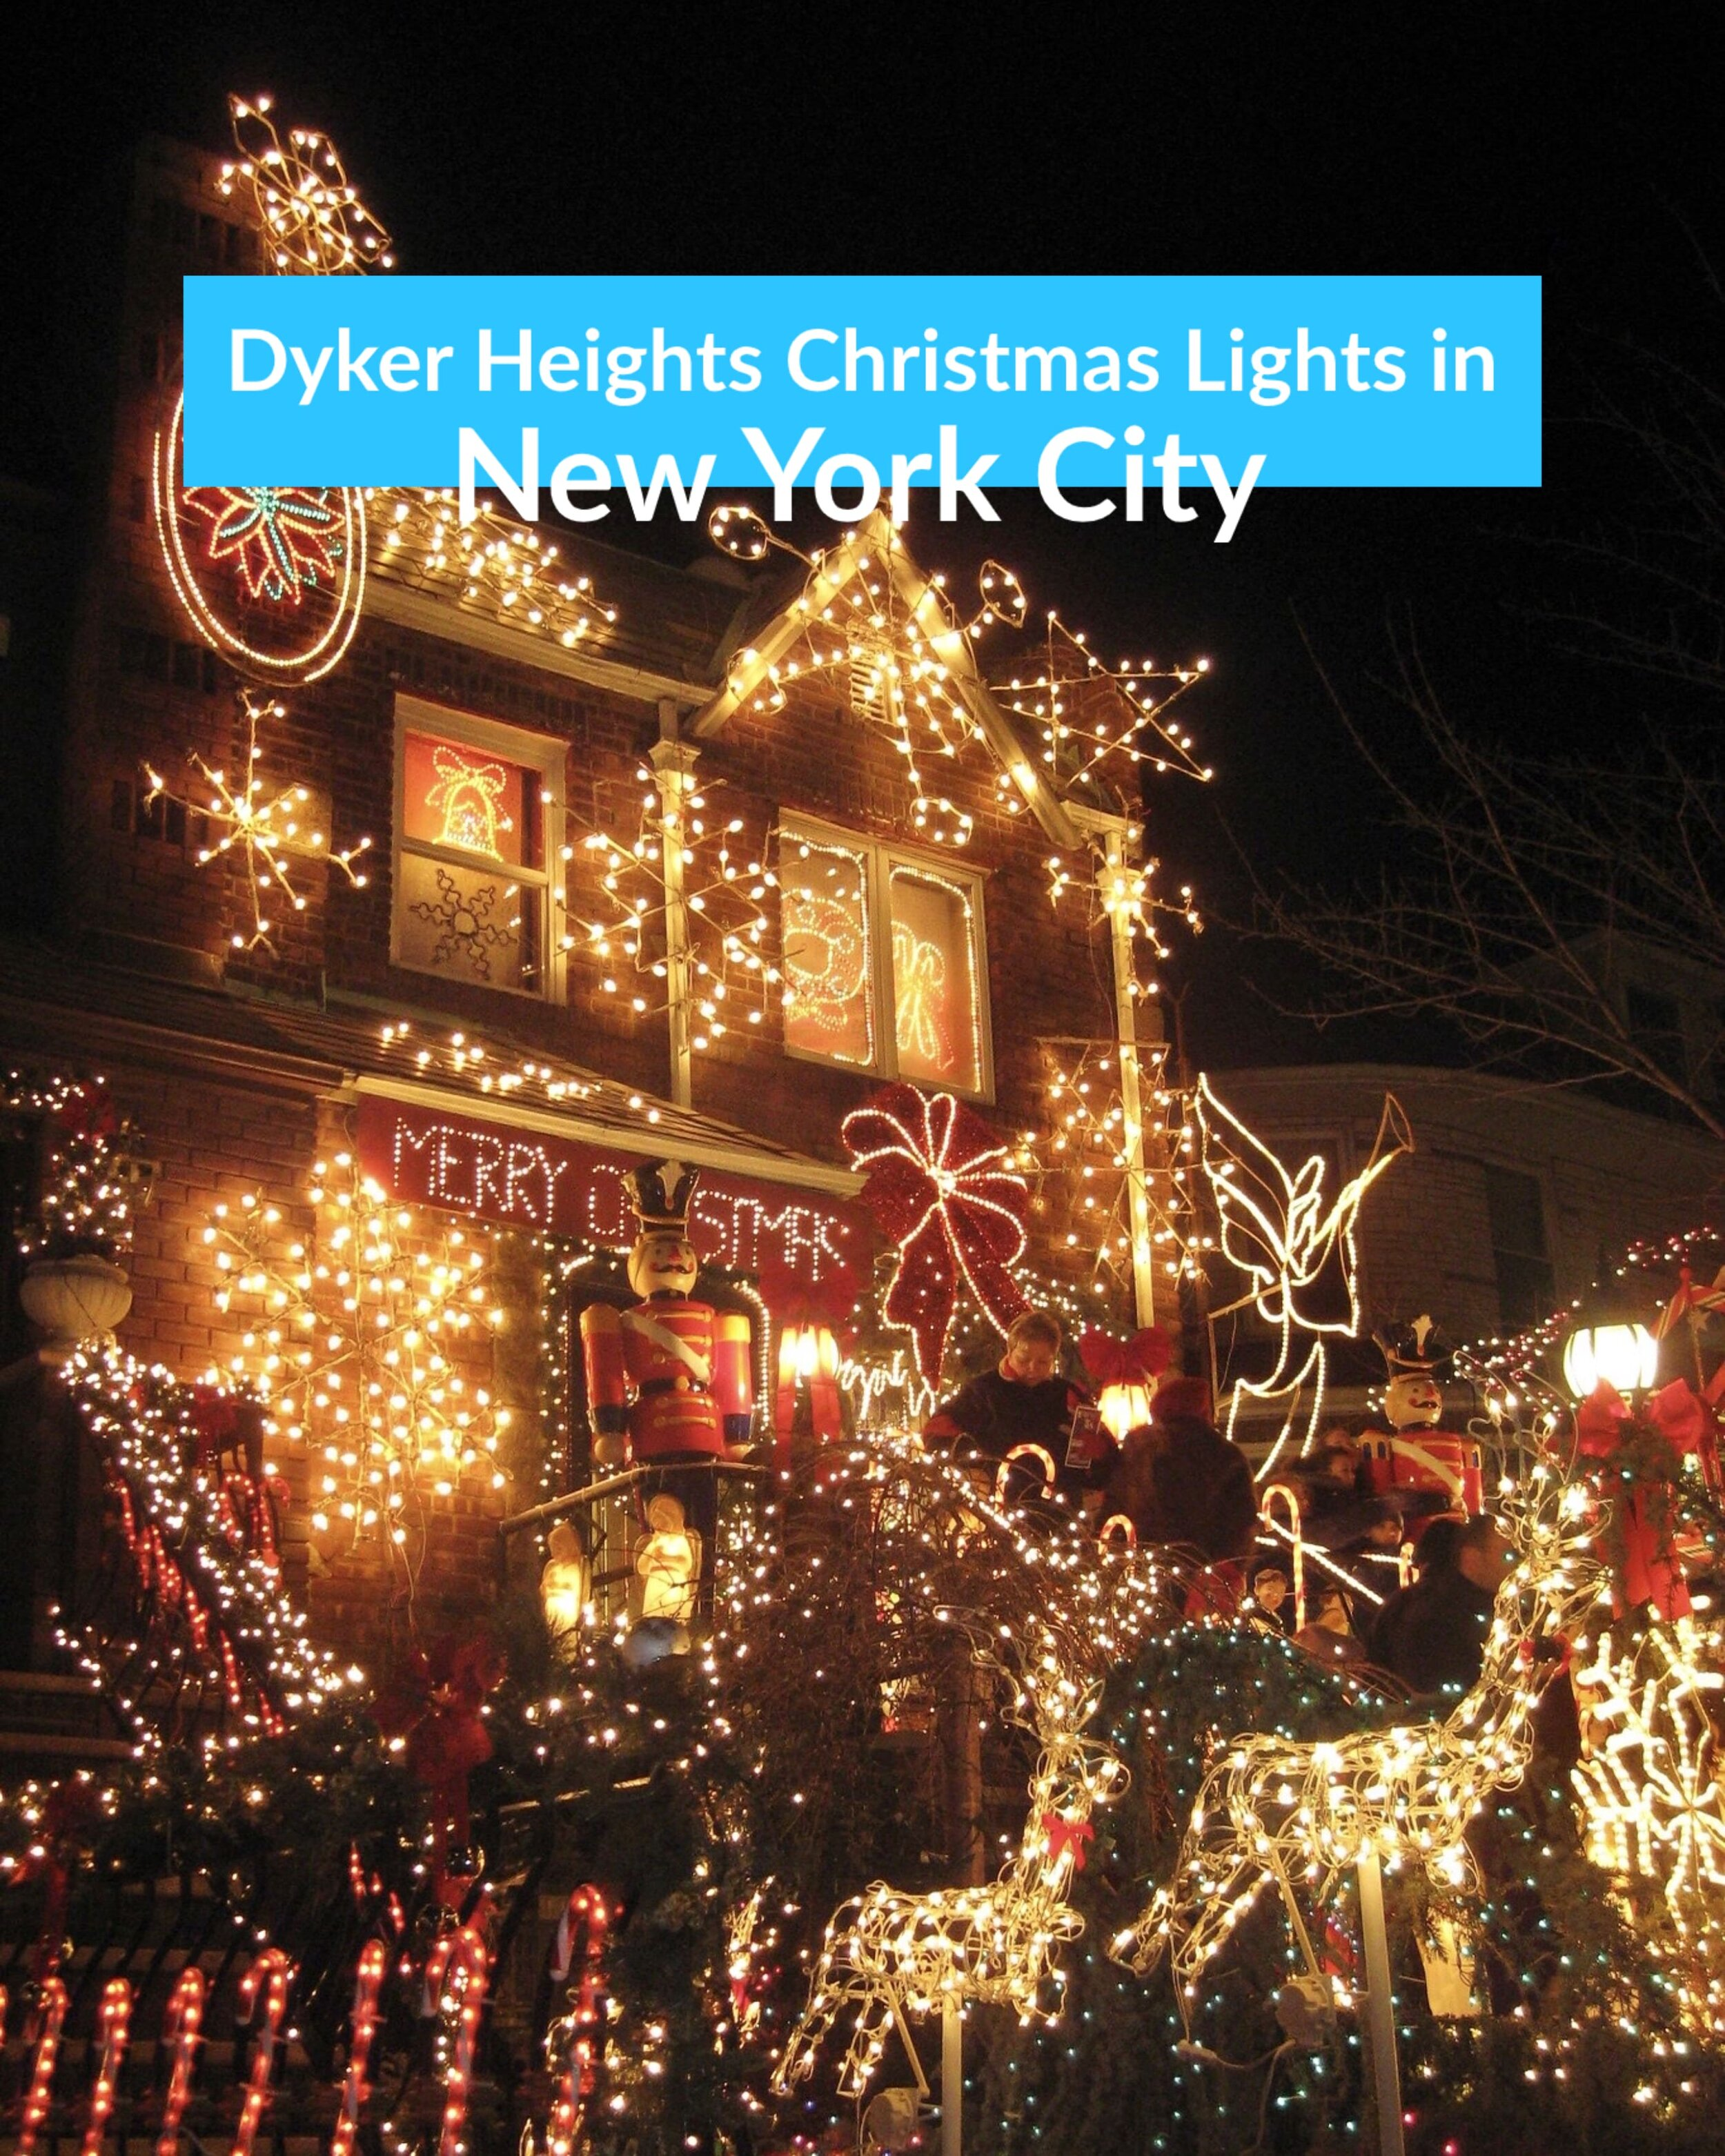 Nyc 2020 Christmas Lights Dyker Heights Christmas Lights: A Complete Guide | Marco Feng